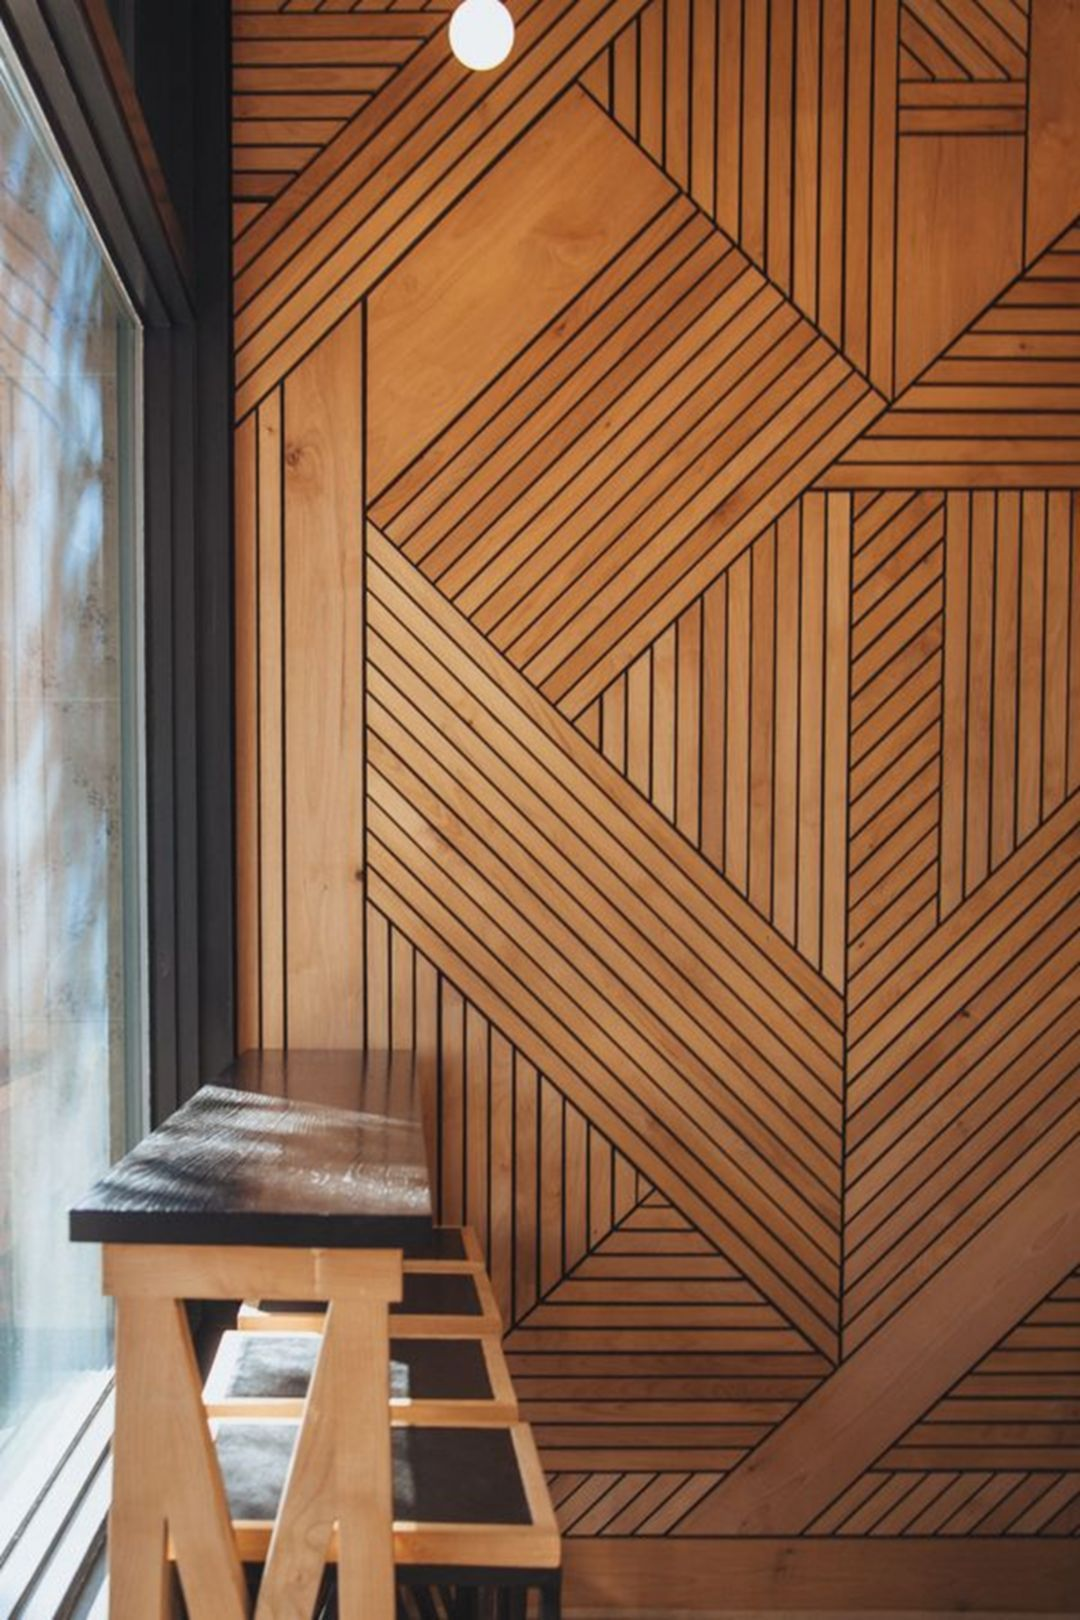 Pin By Therosesmart On Interior 1 Wood Wall Covering Wall Design Wooden Wall Panels